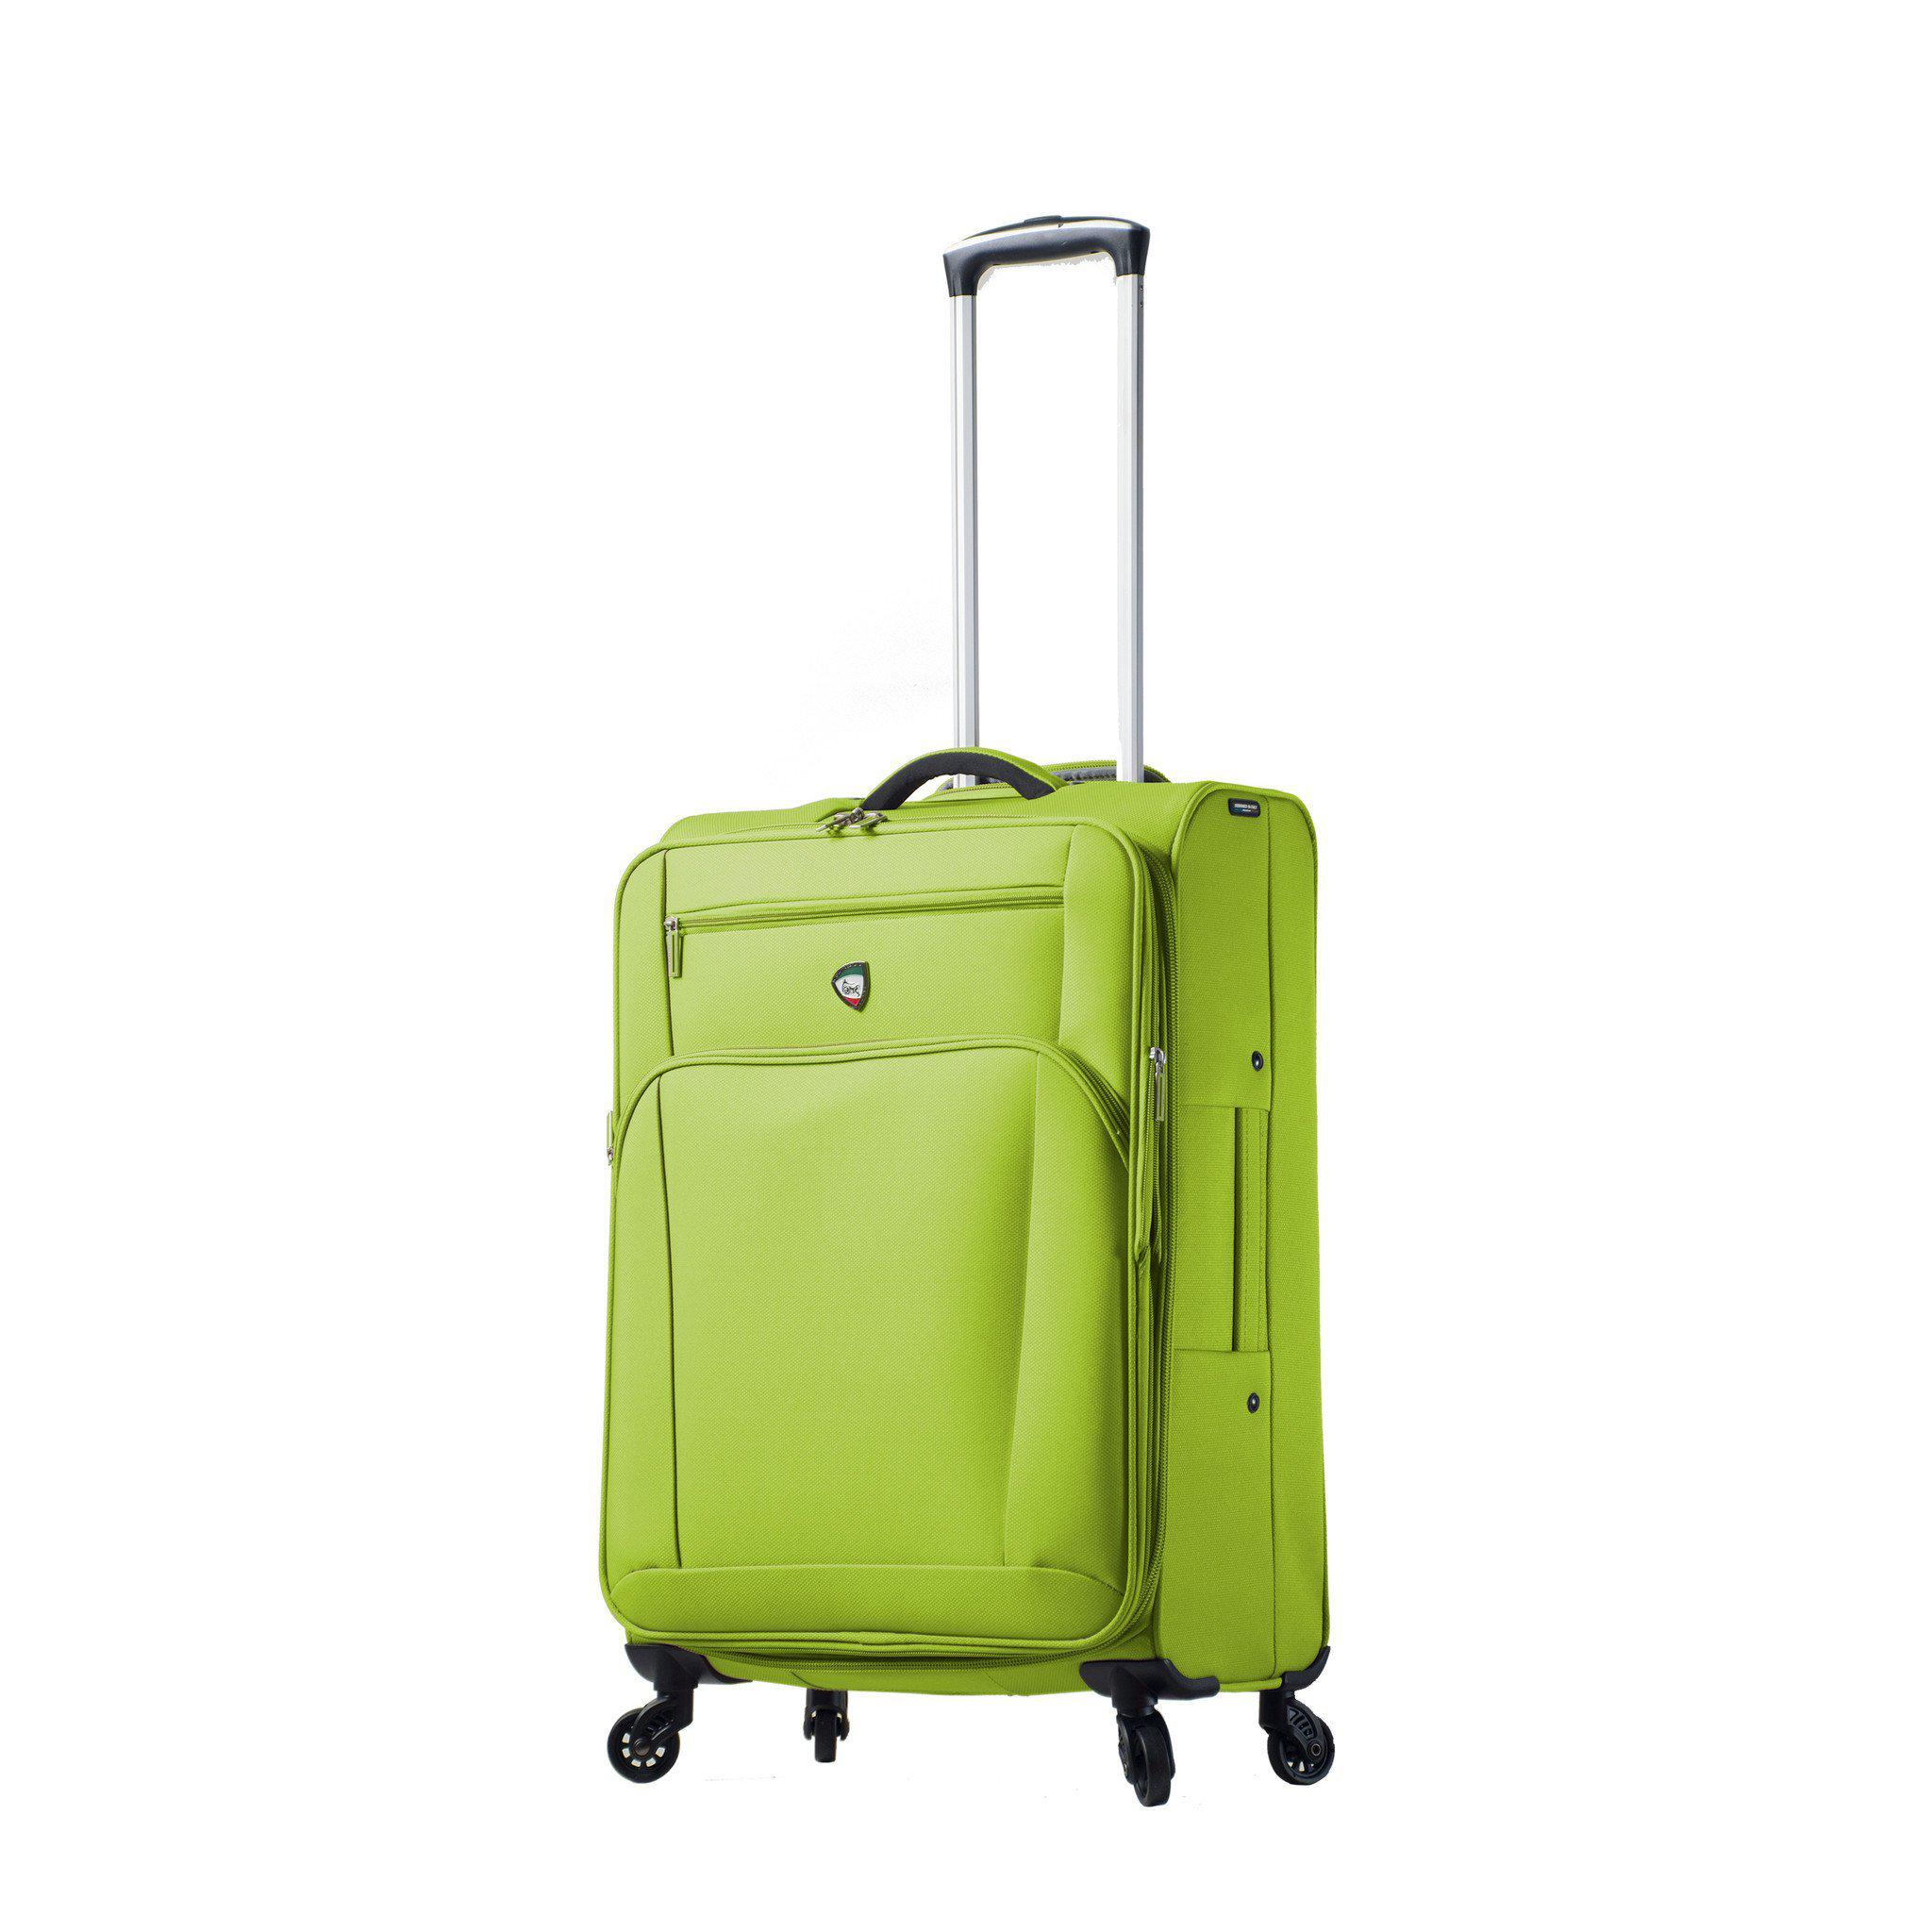 "Aria Softside 24"" Spinner Luggage"